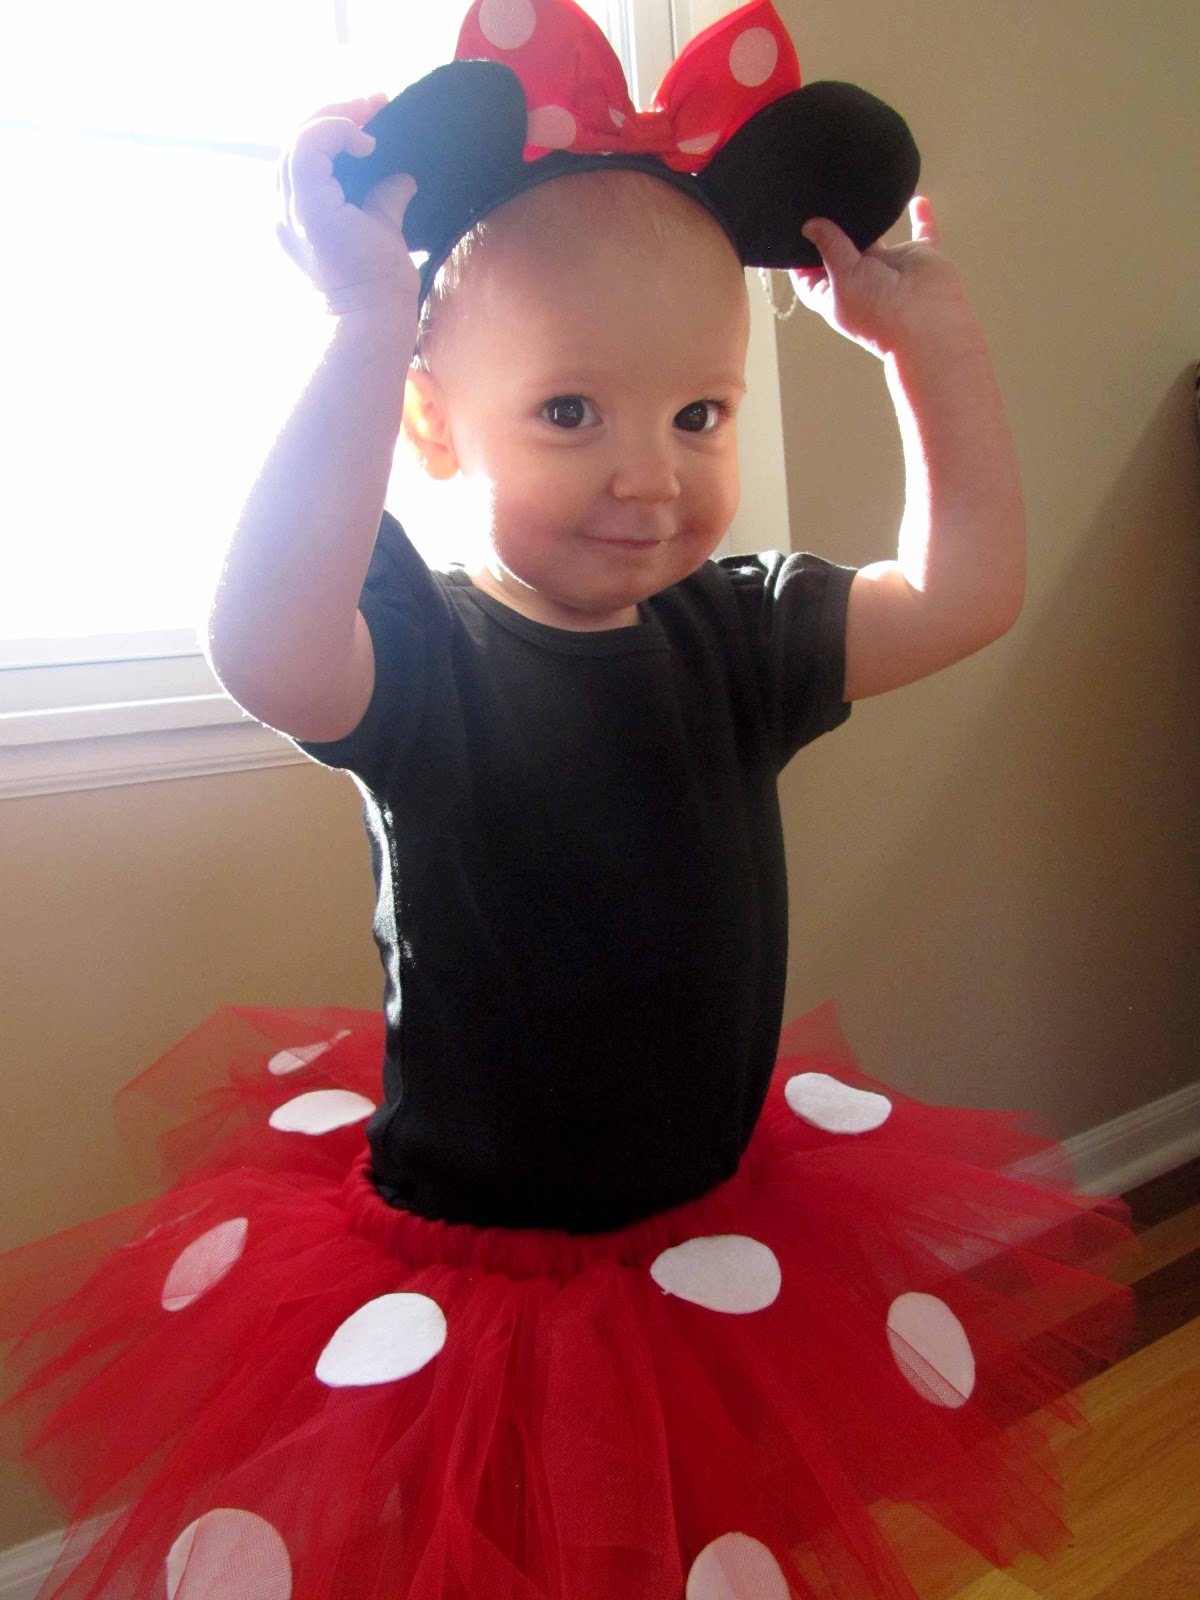 Moved Permanently. SaveEnlarge · Diy Toddler Minnie Mouse Costume ...  sc 1 st  Meningrey & Diy Minnie Mouse Costume For Toddler - Meningrey